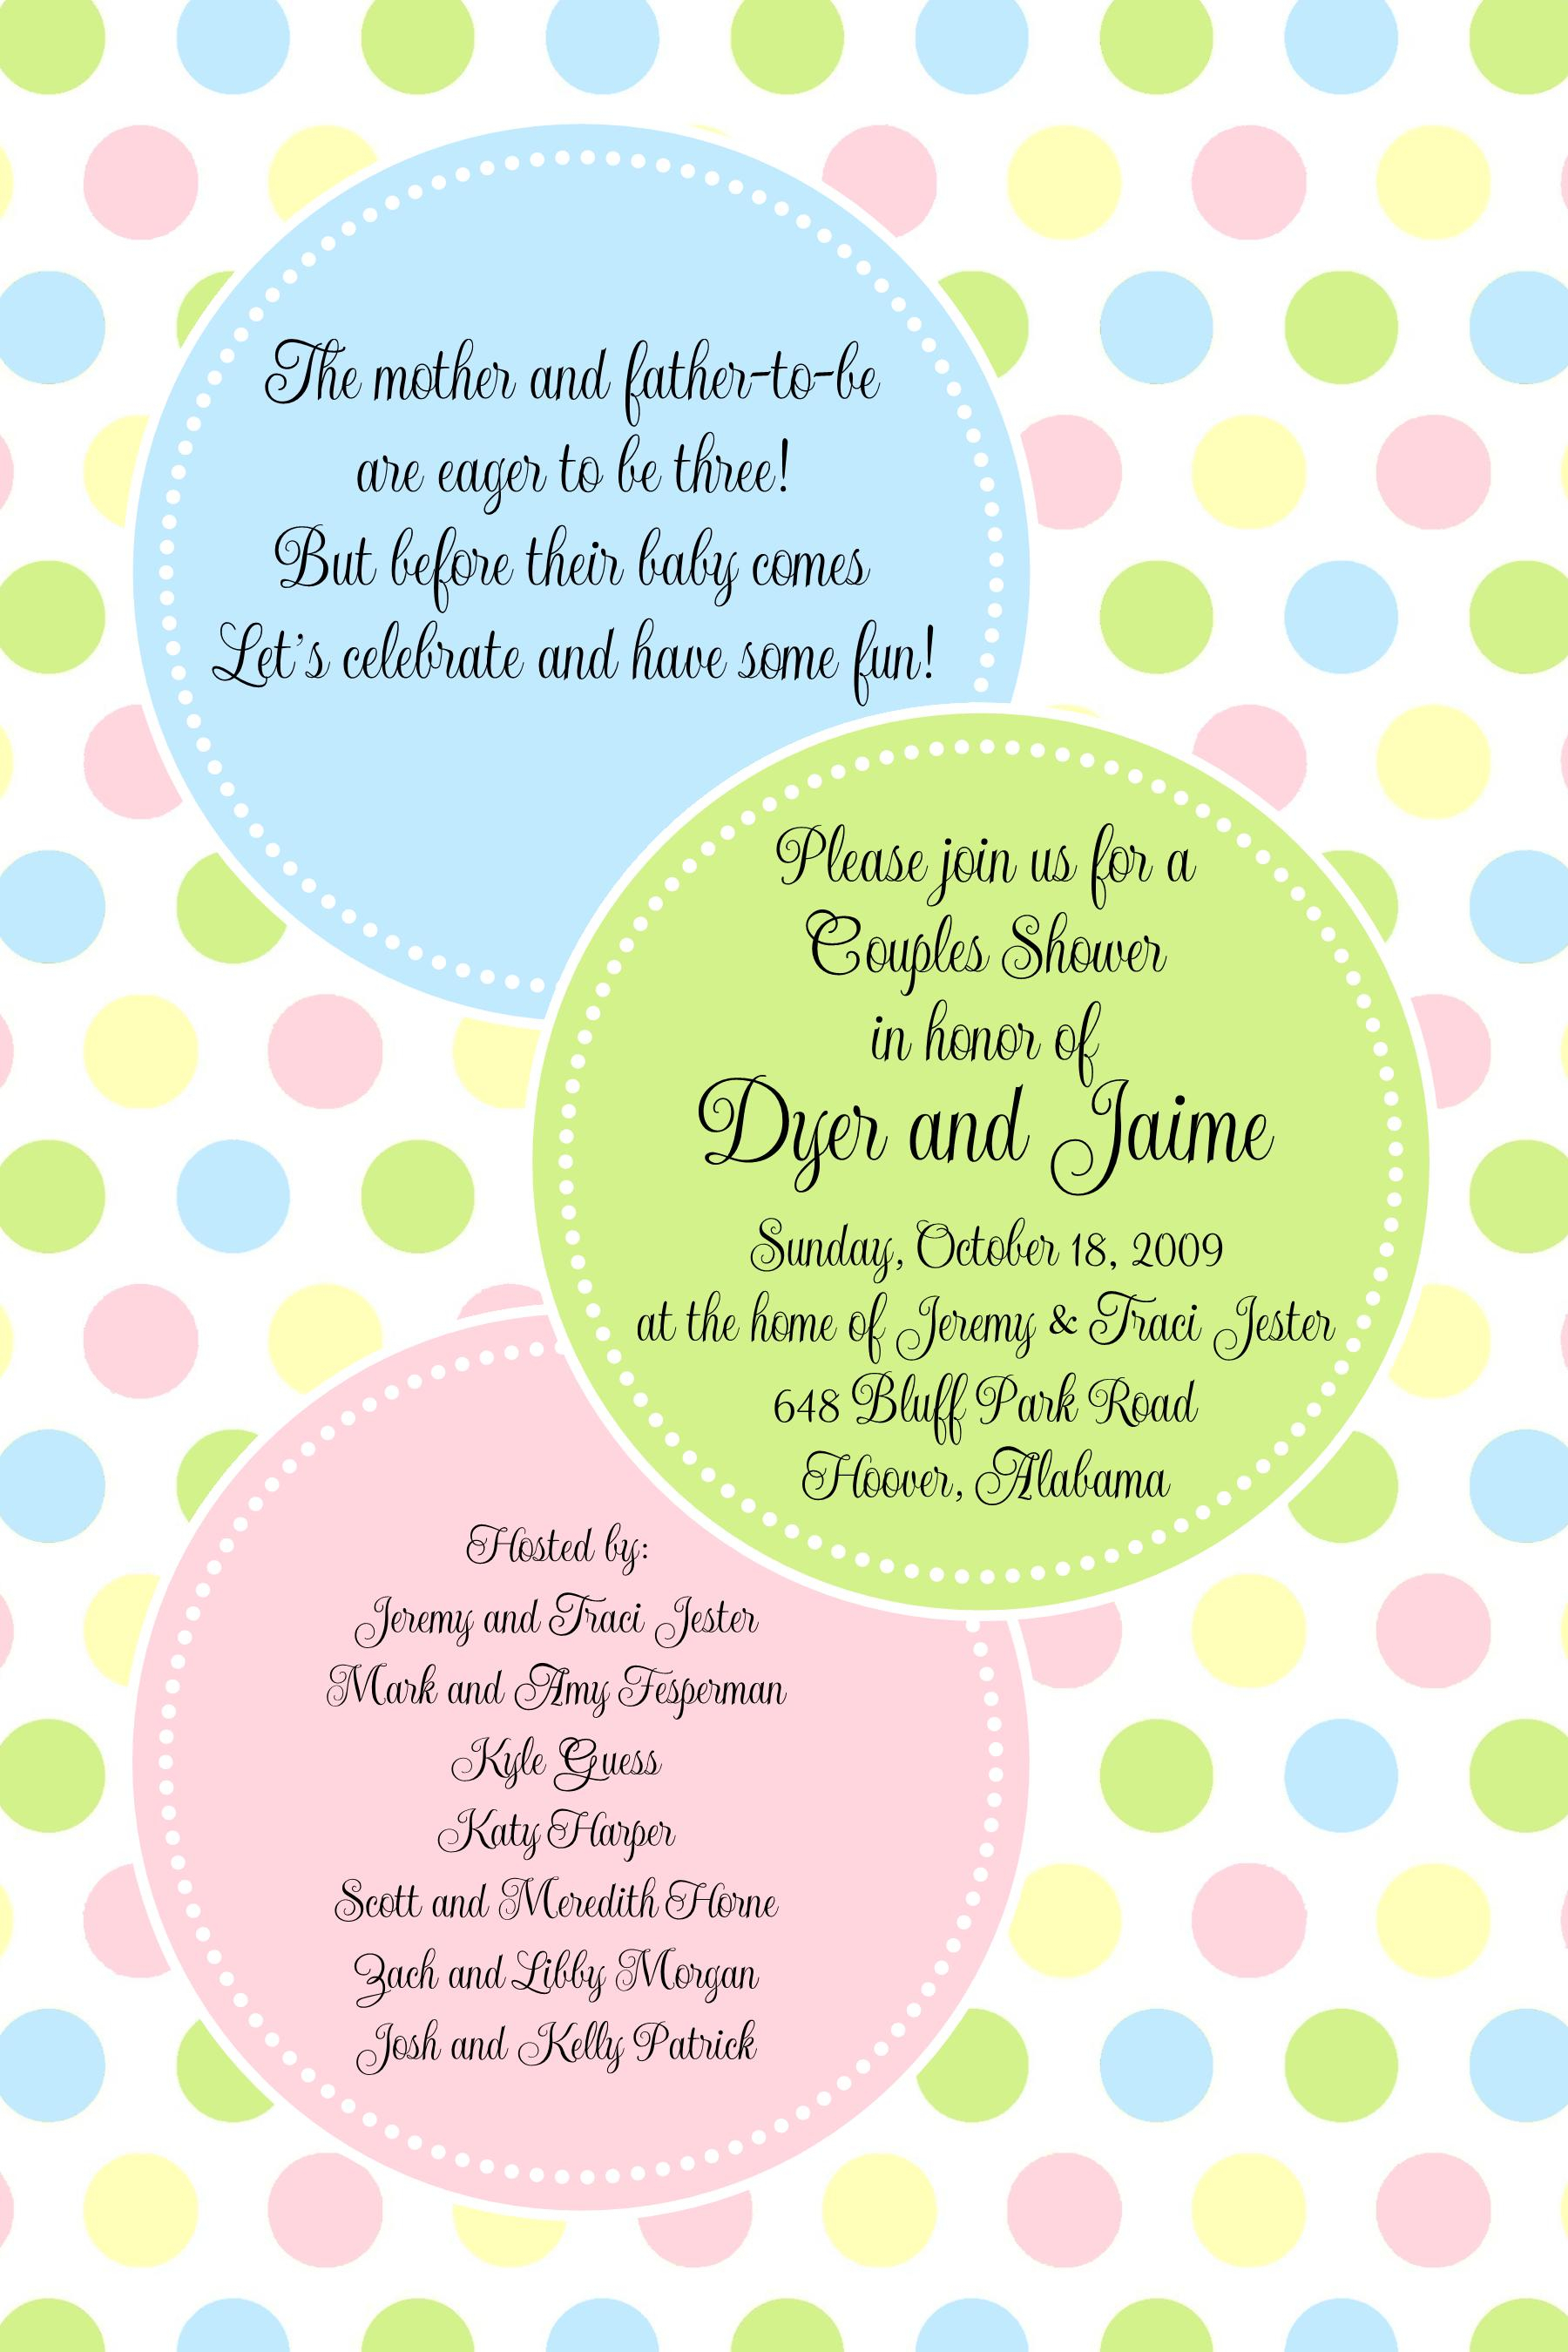 jungle theme birthday card ; jungle-theme-birthday-card-for-twins-baby-shower-themes-for-twins-archives-baby-shower-diy